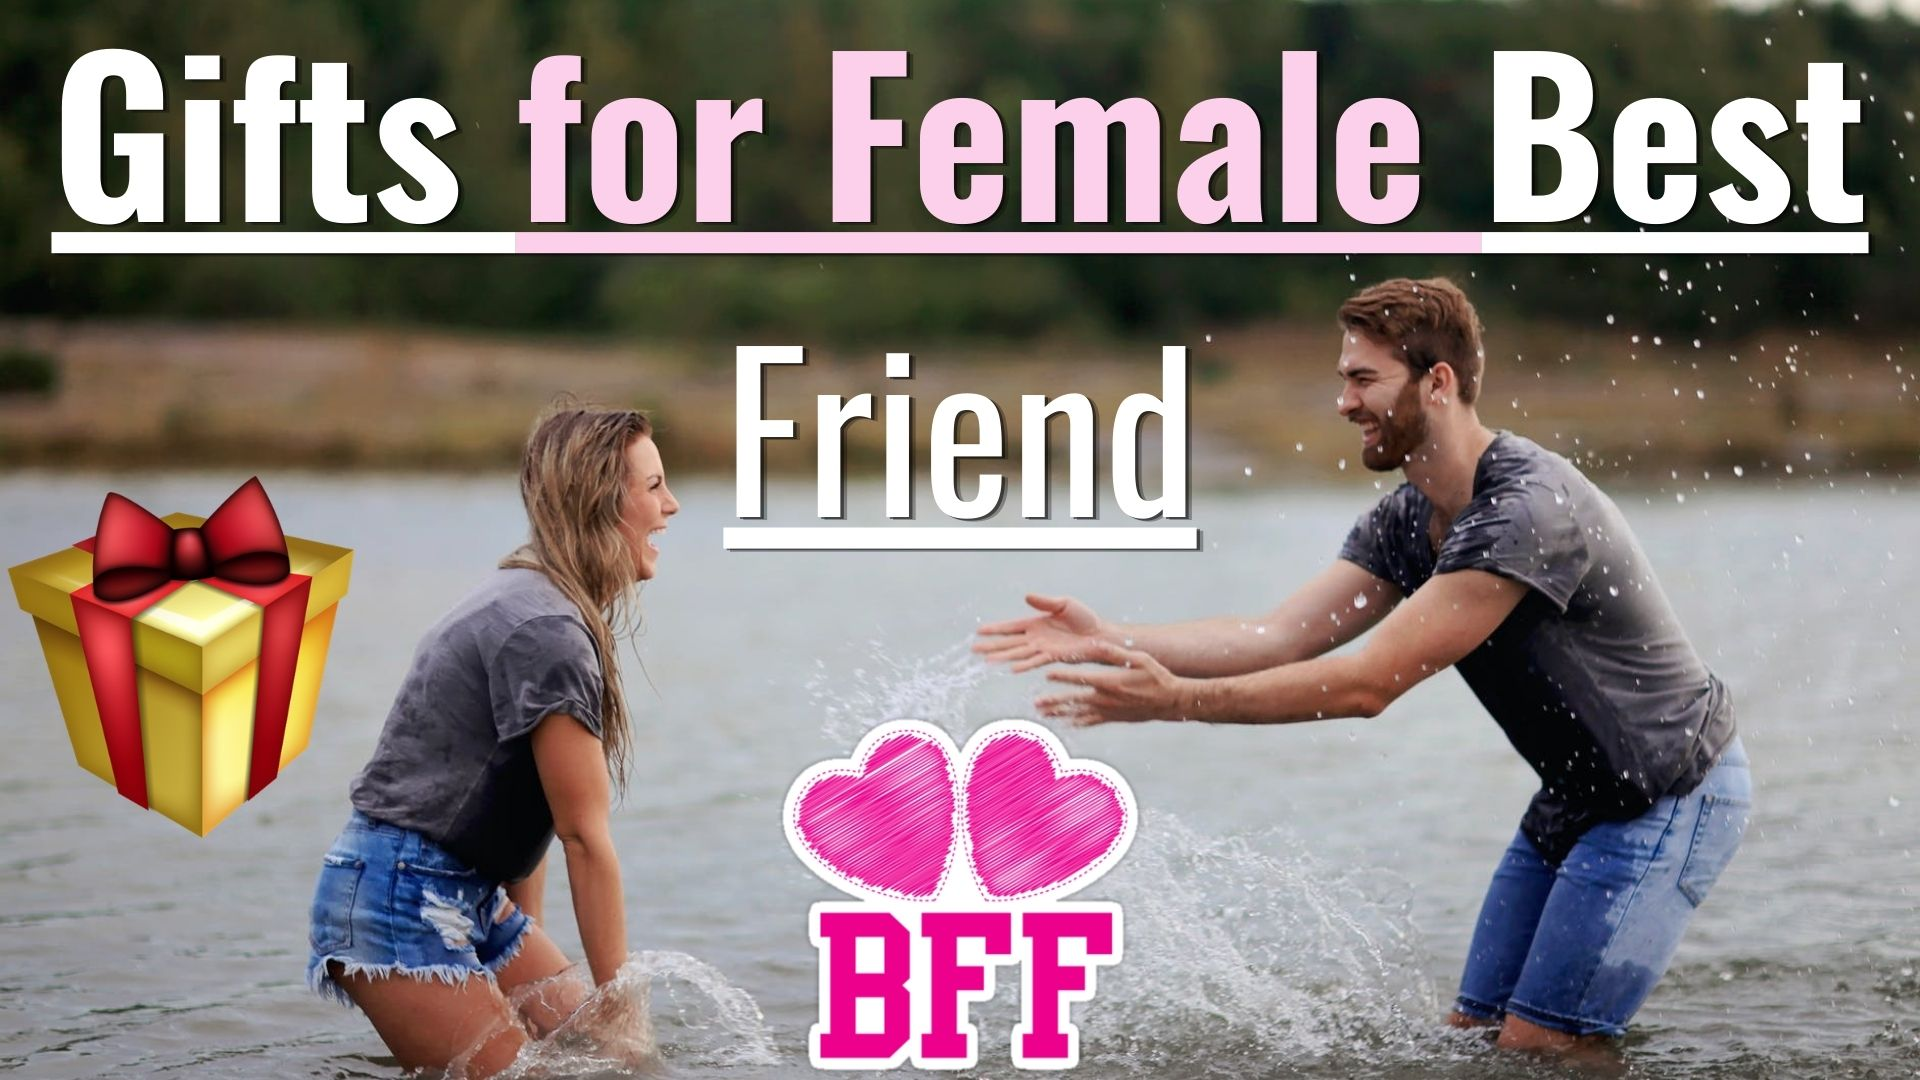 Gifts for Female Best Friend